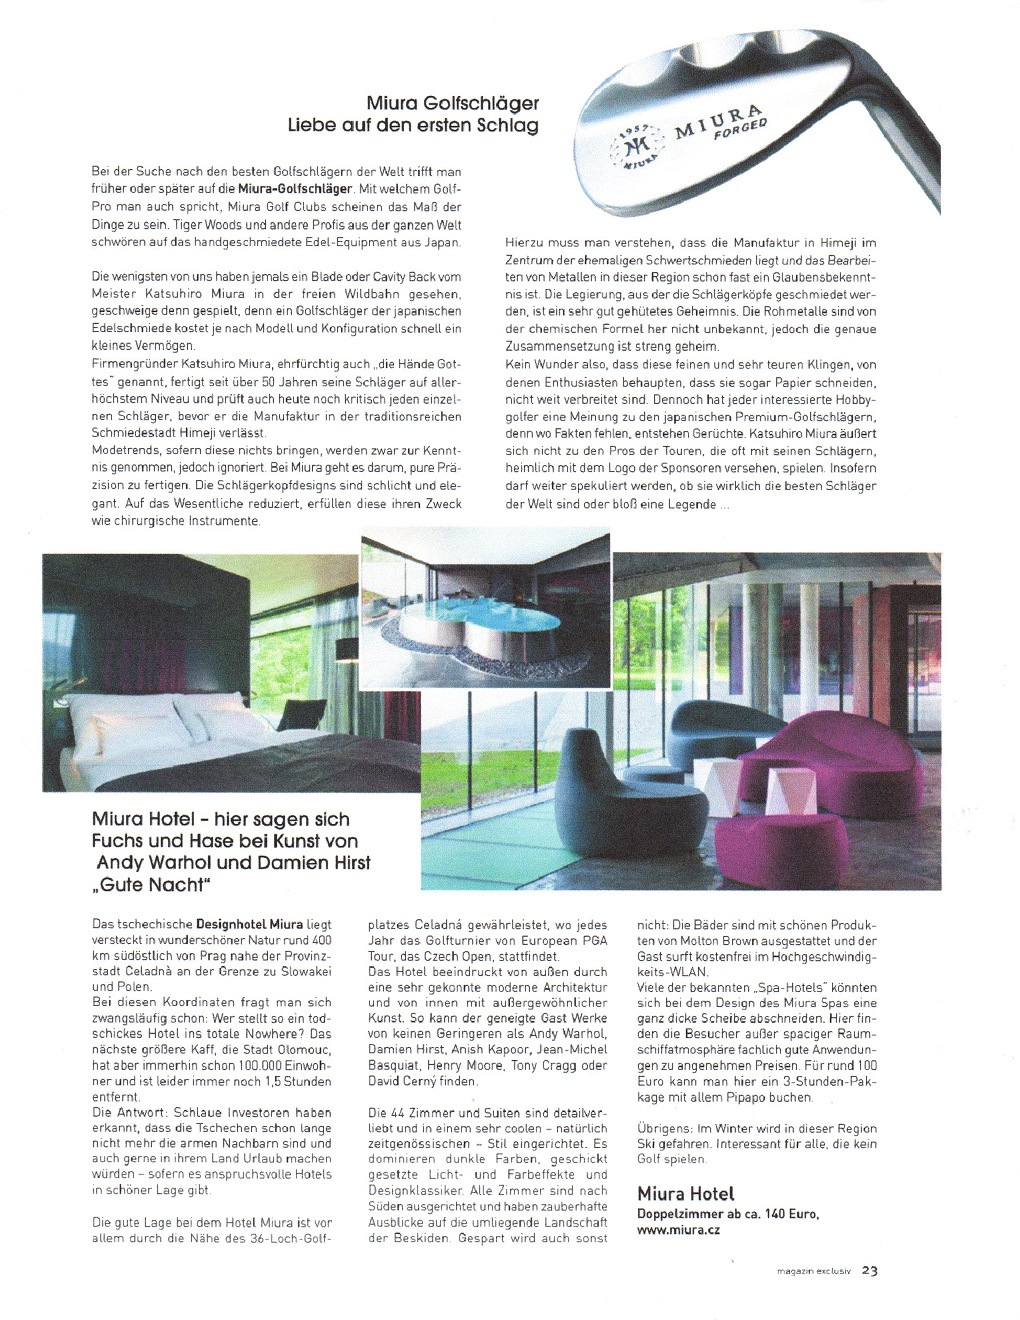 Miura Golf Featured in Magazin Exclusiv - Germany - Mary Beth Lacy ...